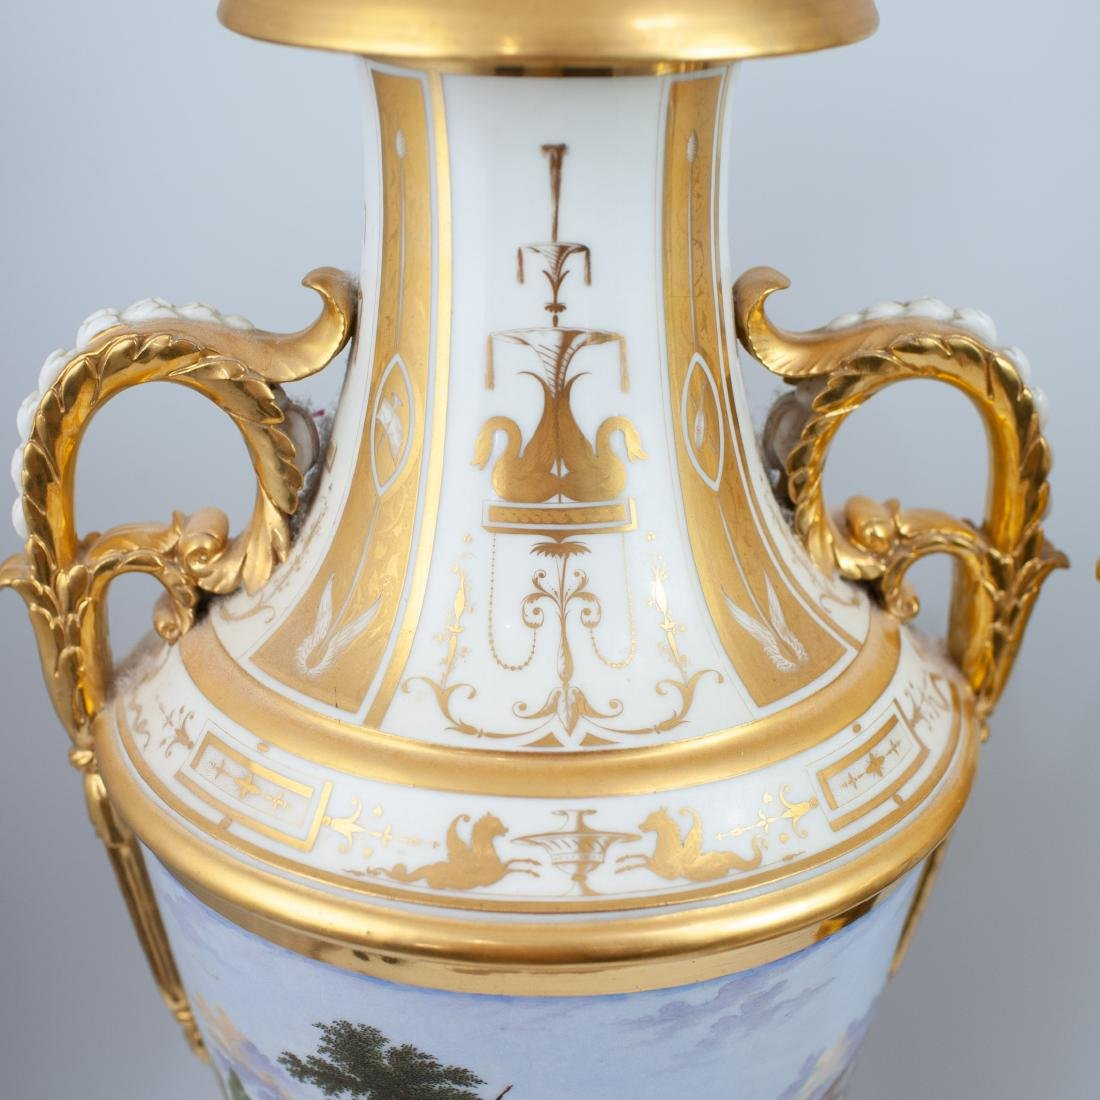 Pair Of 19th Cent. Sevres Porcelain Urns - 2